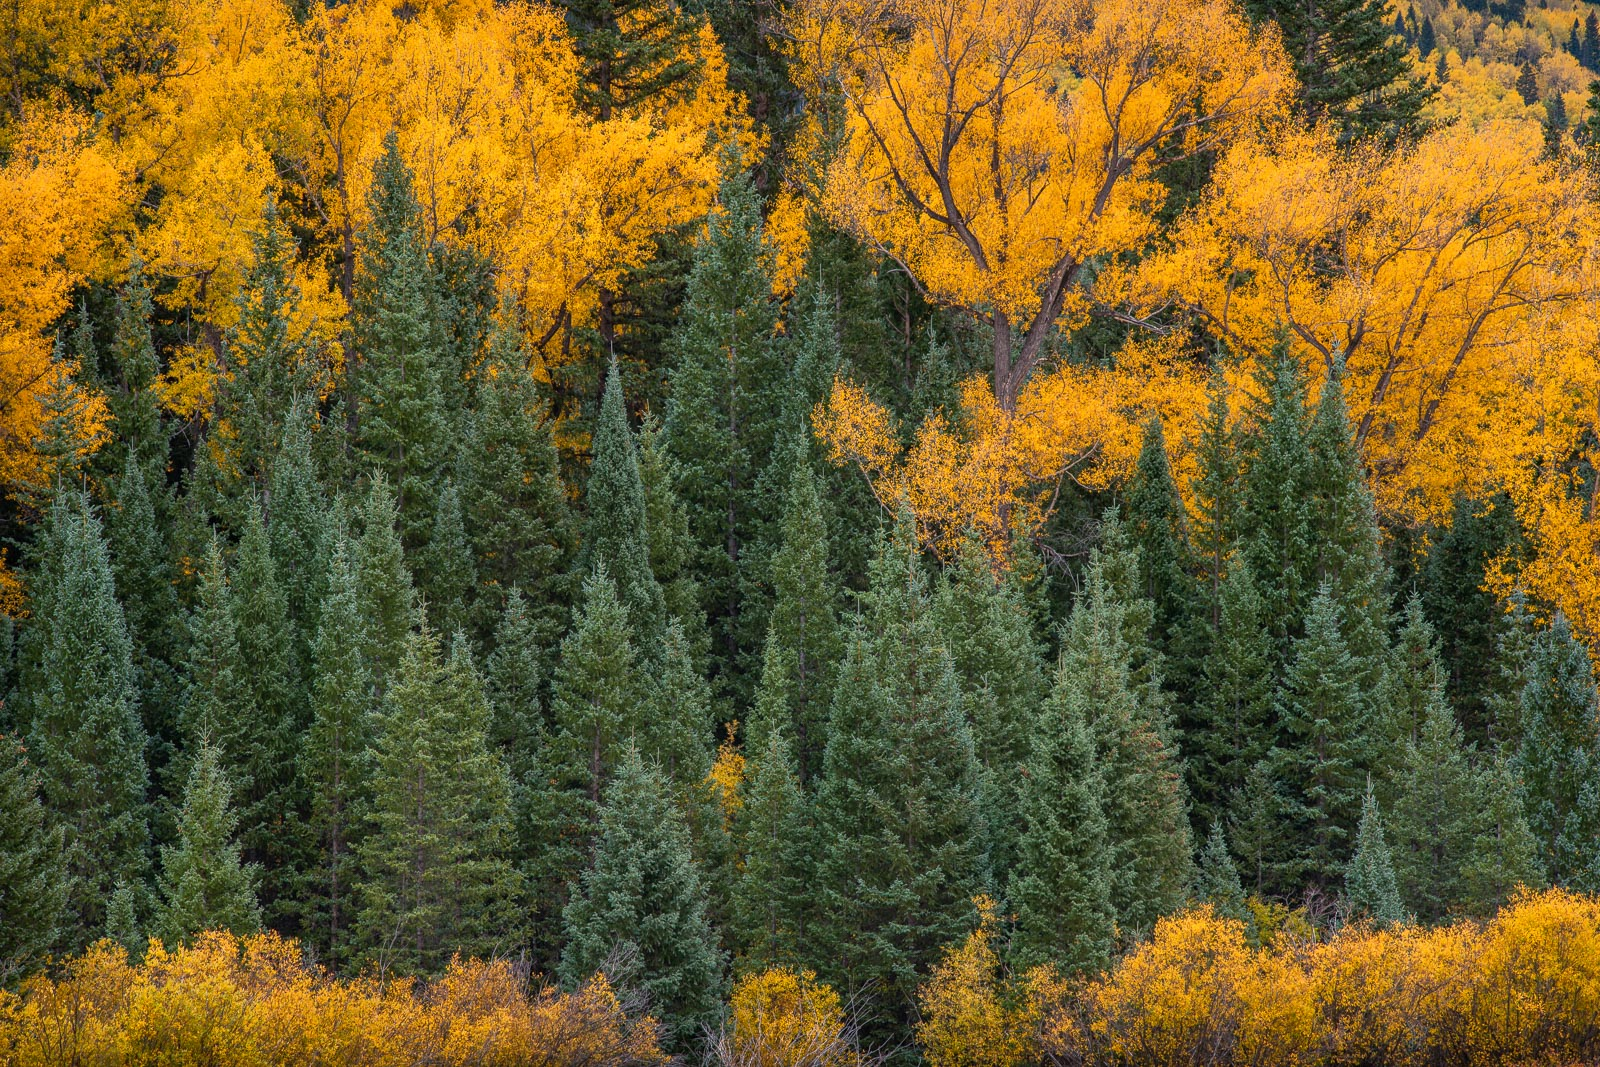 Autumnh Cottonwoods and Blue Spruce in the San Juan Mountains, Colorado.